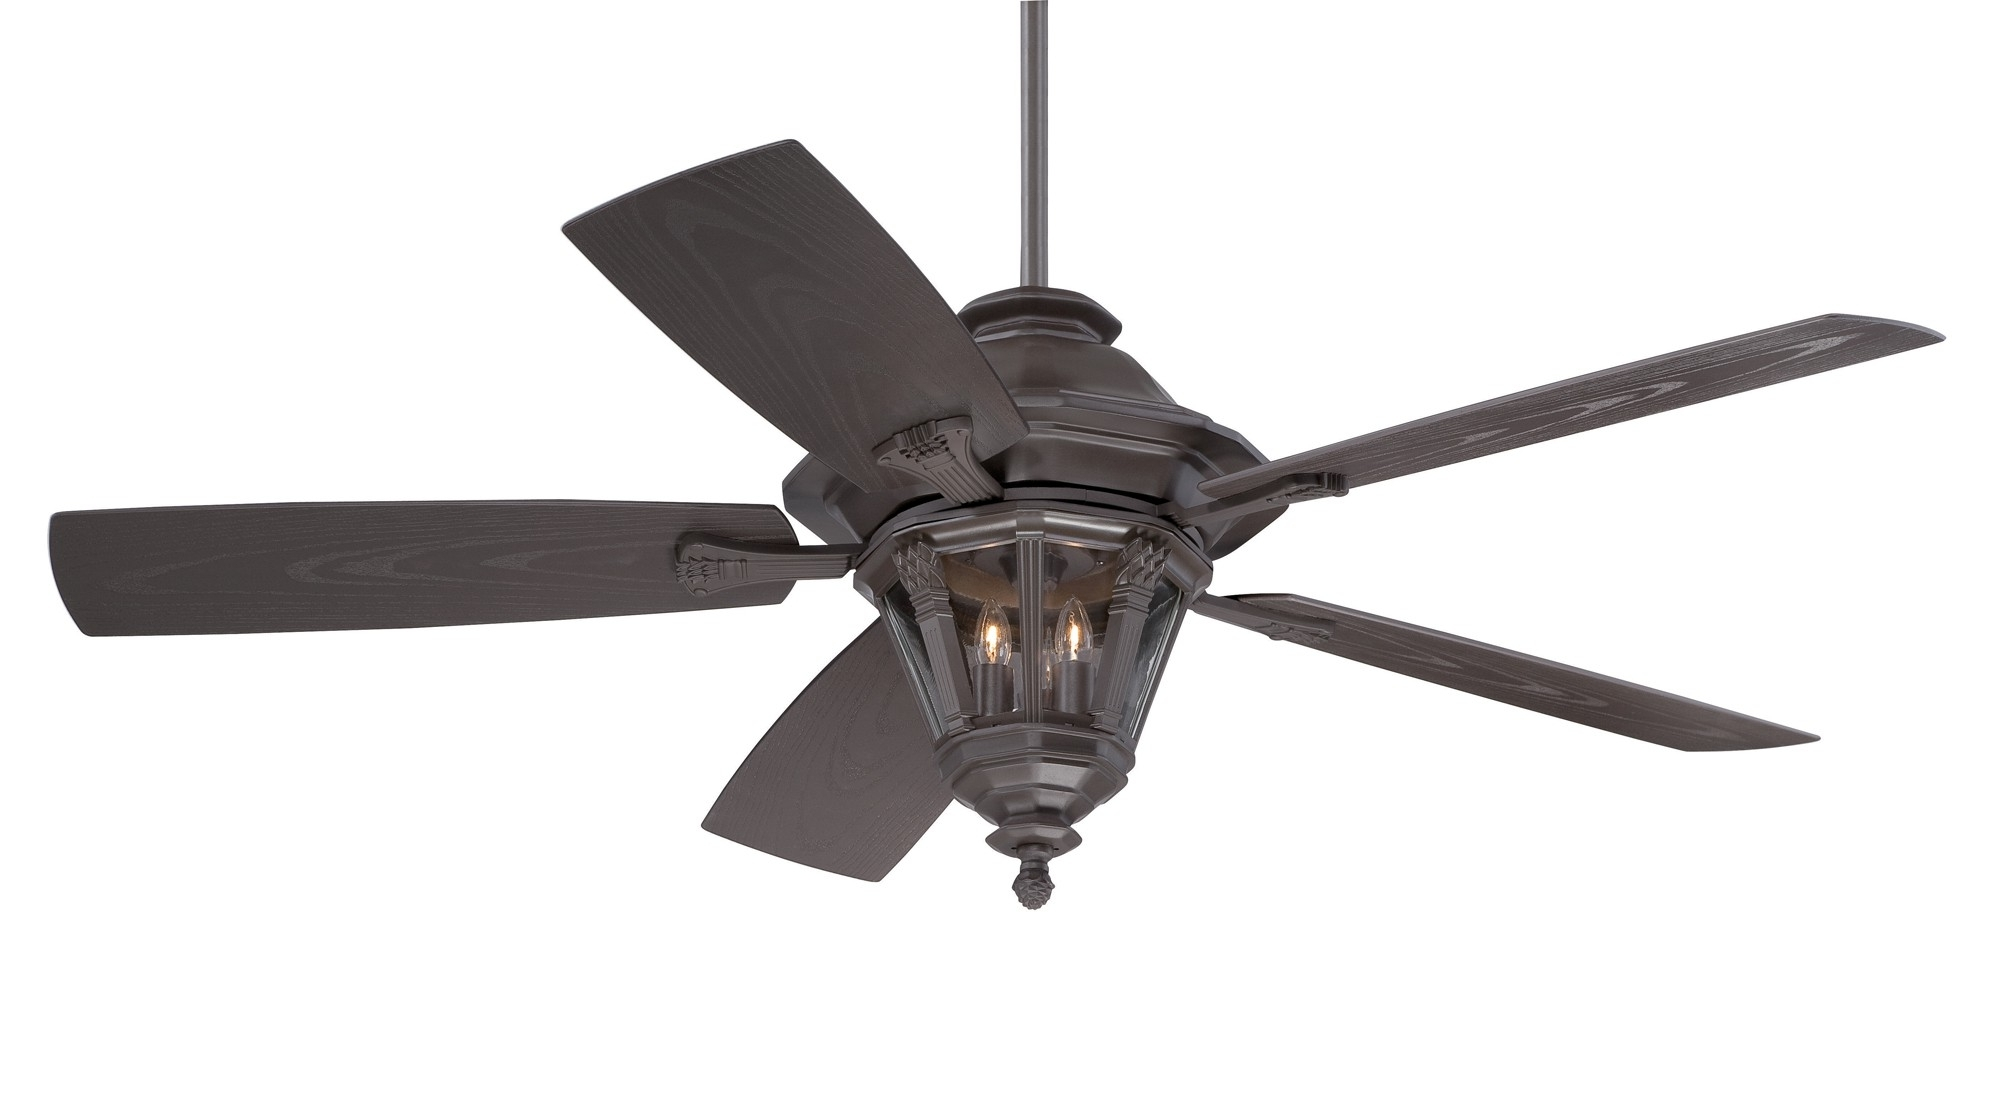 Top 10 Unique Outdoor Ceiling Fans 2018 Warisan Lighting, Best Regarding Fashionable Large Outdoor Ceiling Fans With Lights (View 17 of 20)